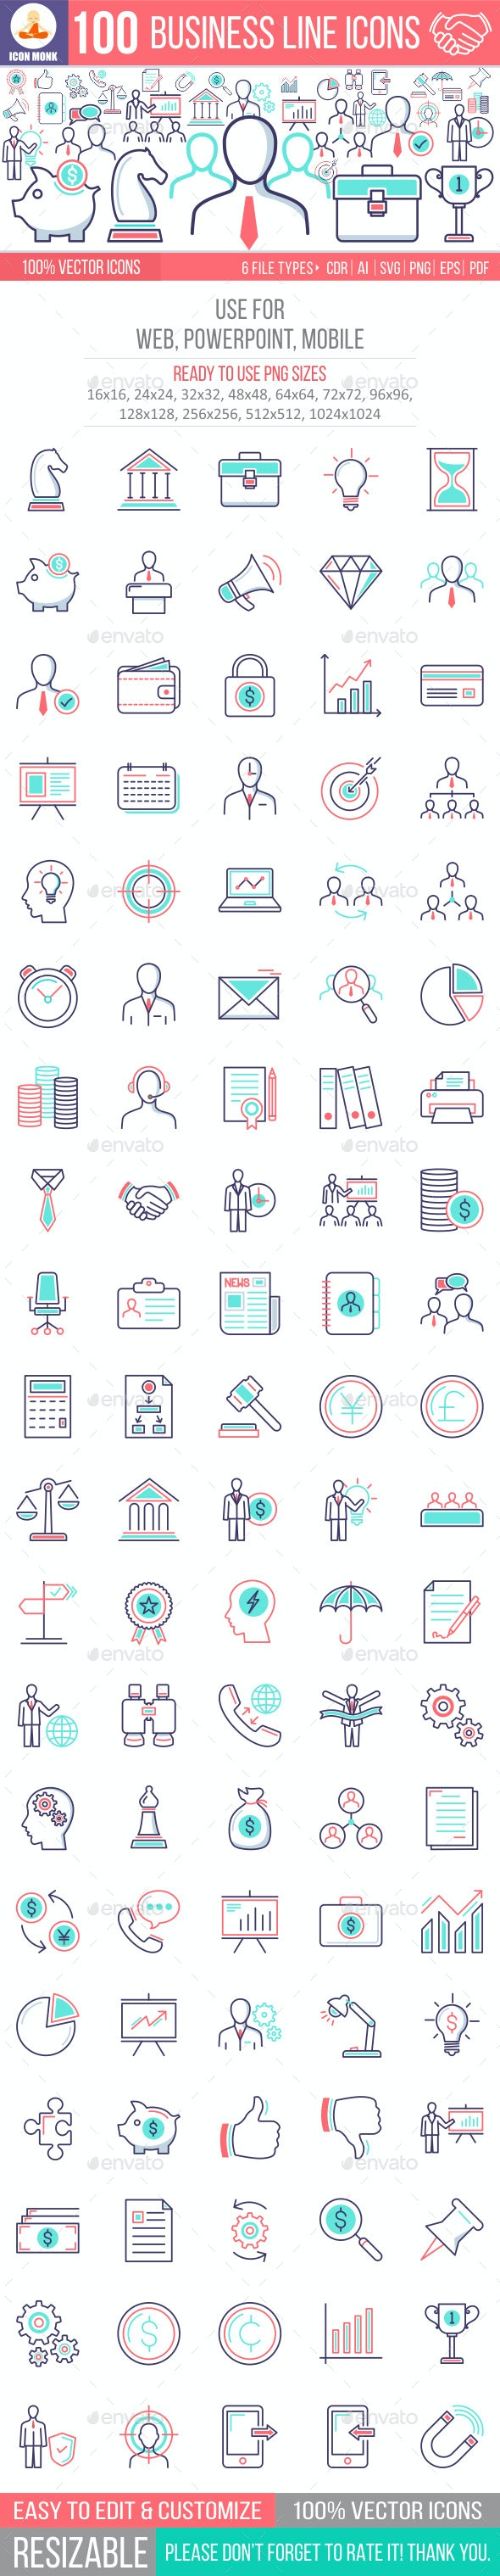 100 Business Line Icons - Business Icons